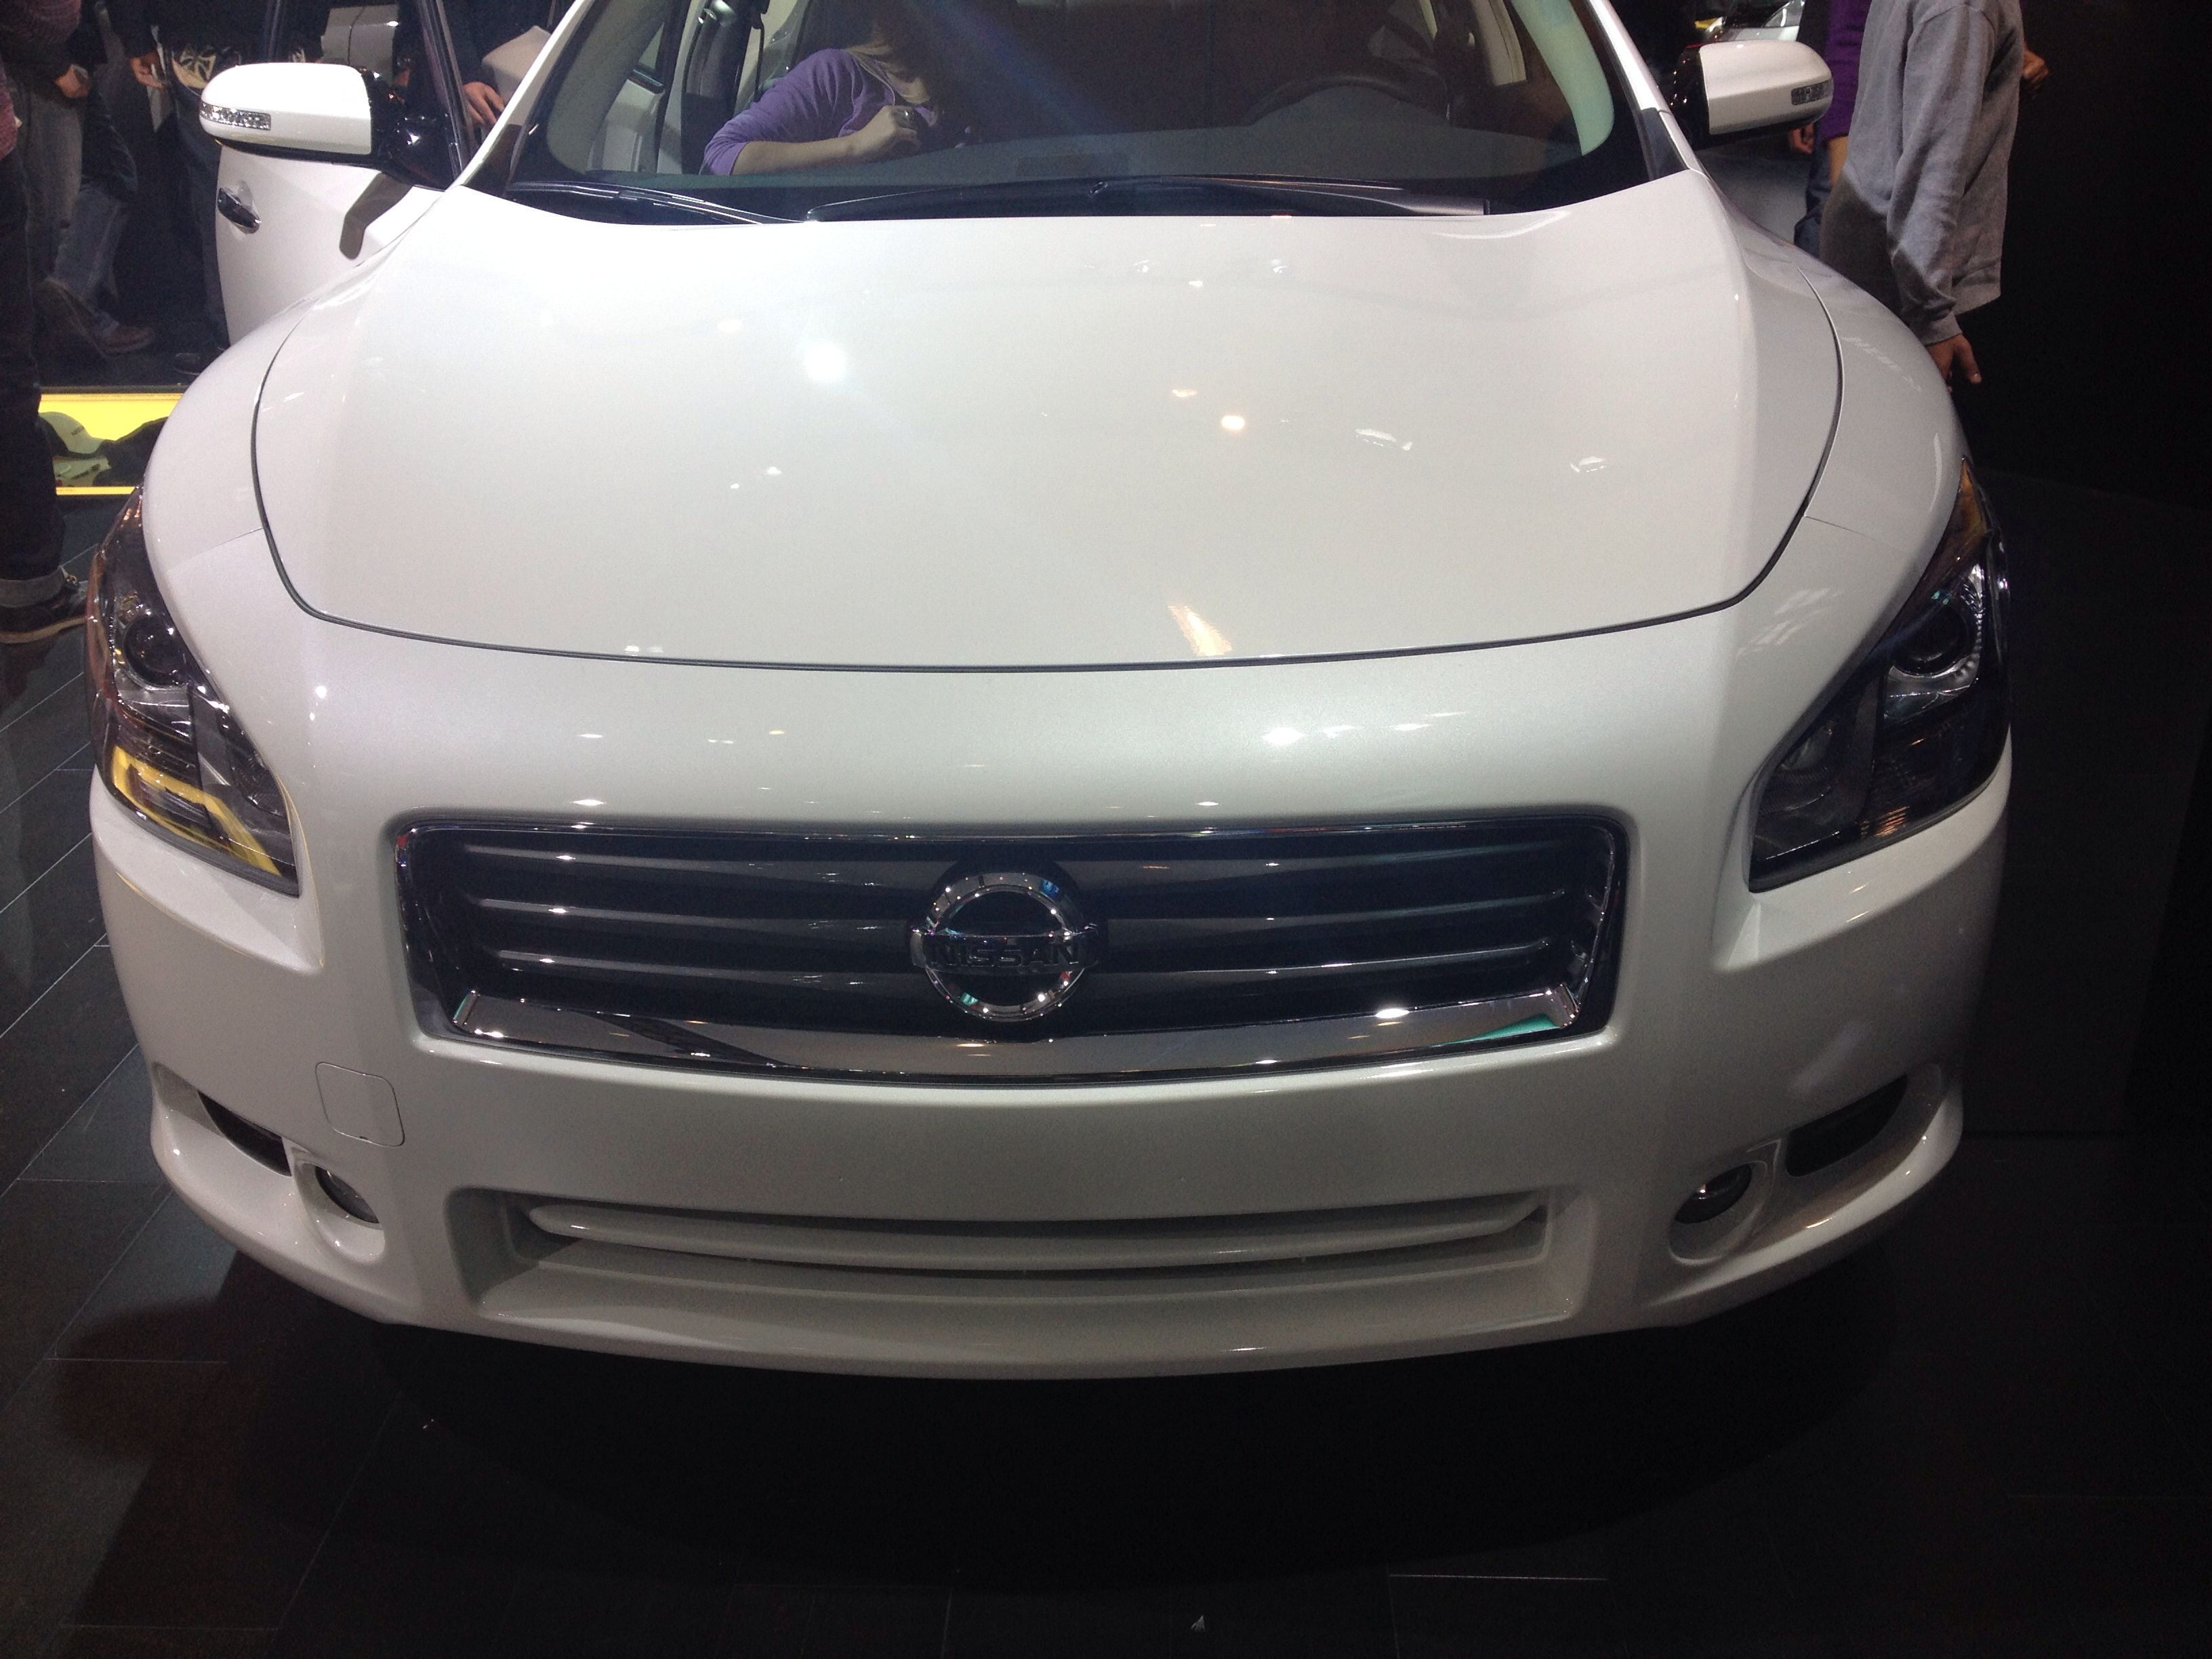 Dch Freehold Nissan >> Picture Of 2013 Nissan Maxima | Autos Post